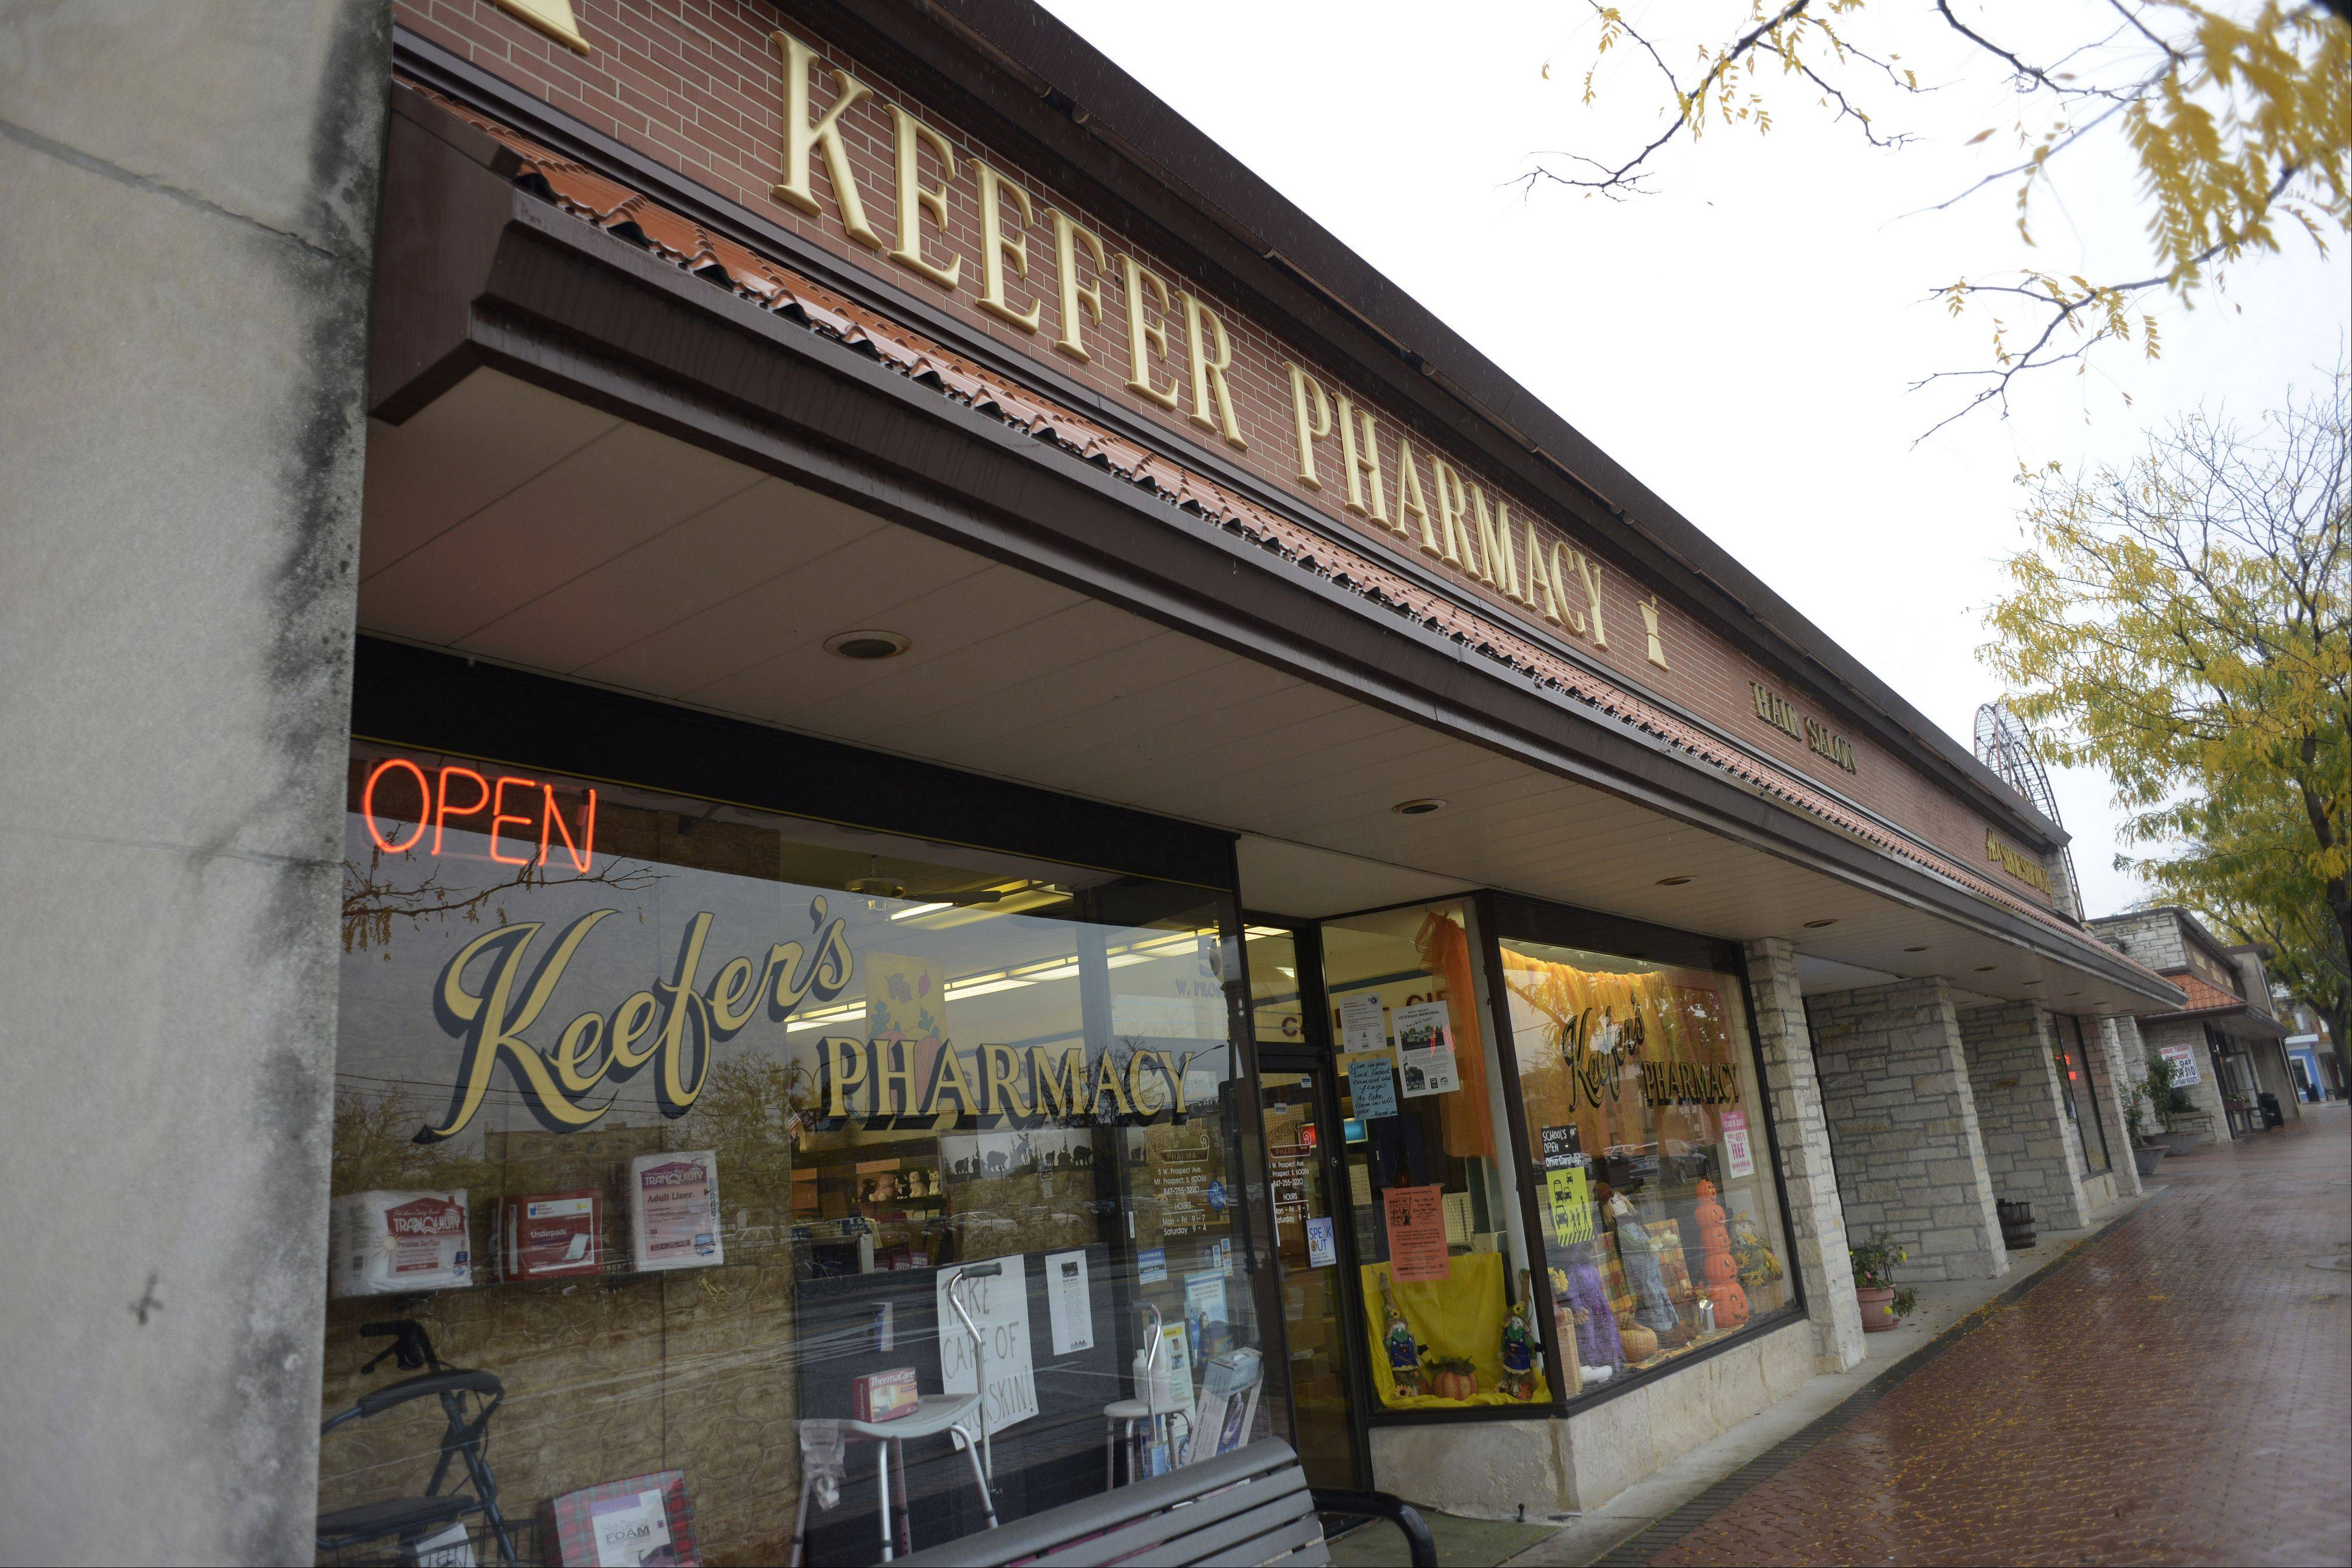 Keefer's Pharmacy has been in this Prospect Avenue location since 1966.